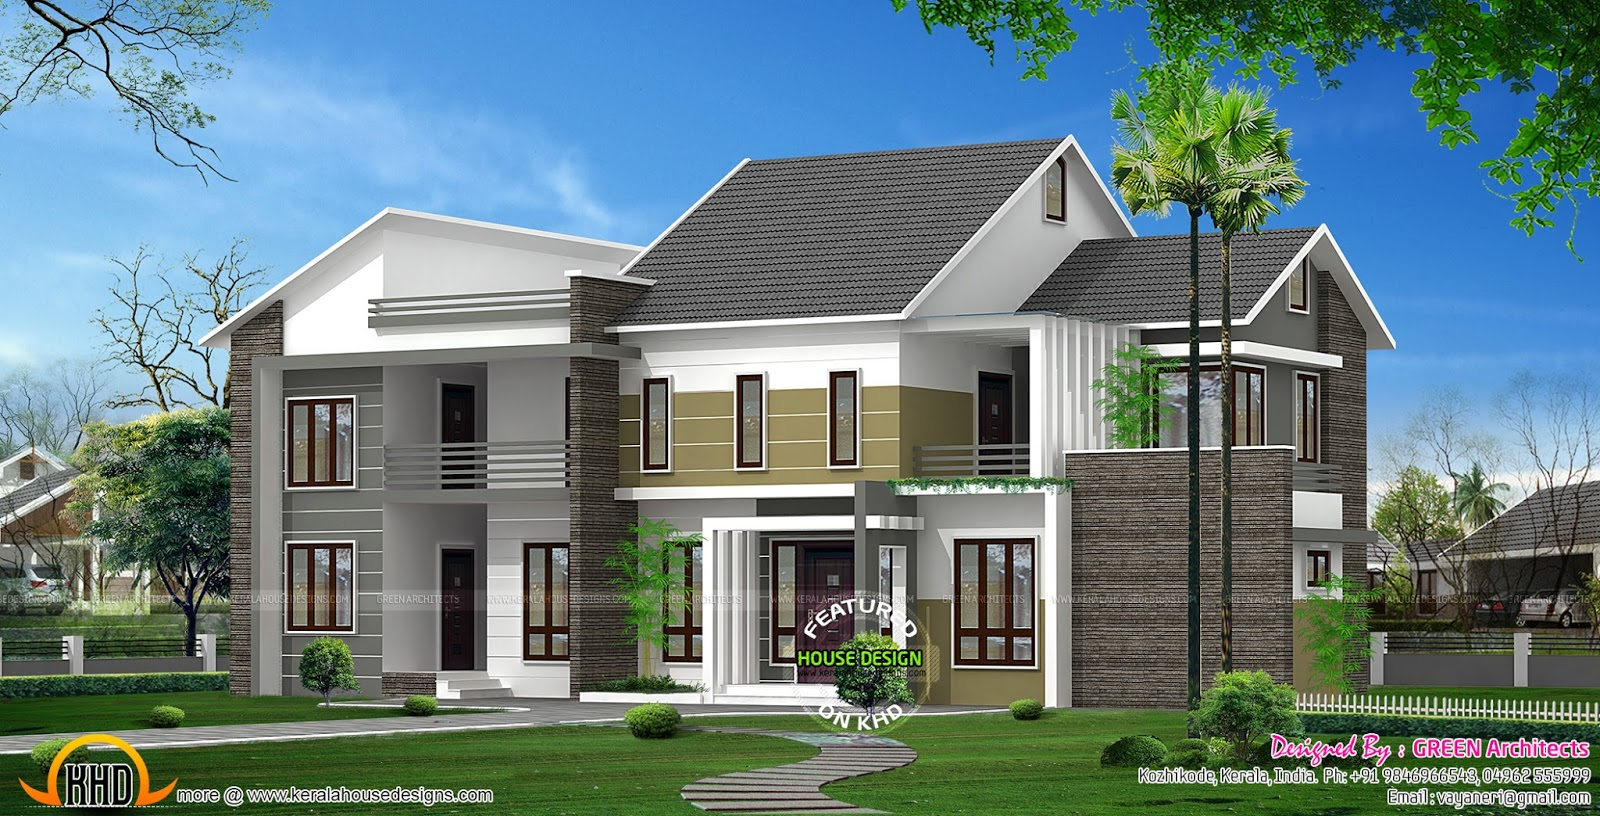 floor plans 2300 to 2500 square feet trend home design 2300 square feet home plans home design and style